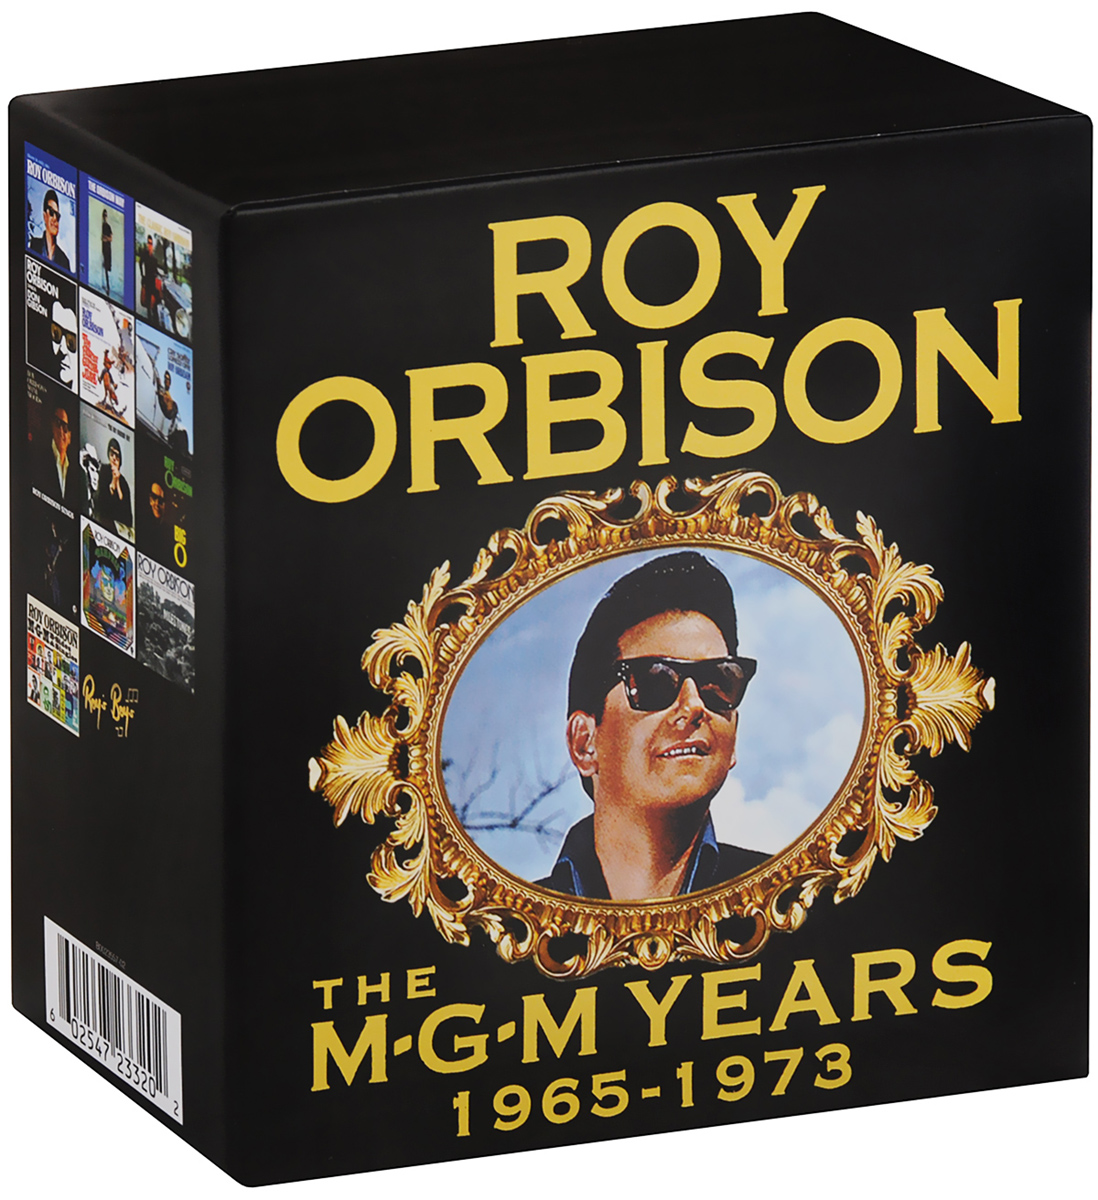 Рой Орбисон,Хэнк Уильямс-старший Roy Orbison. The MGM Years (13 CD) рой орбисон хэнк уильямс старший roy orbison the mgm years 13 cd